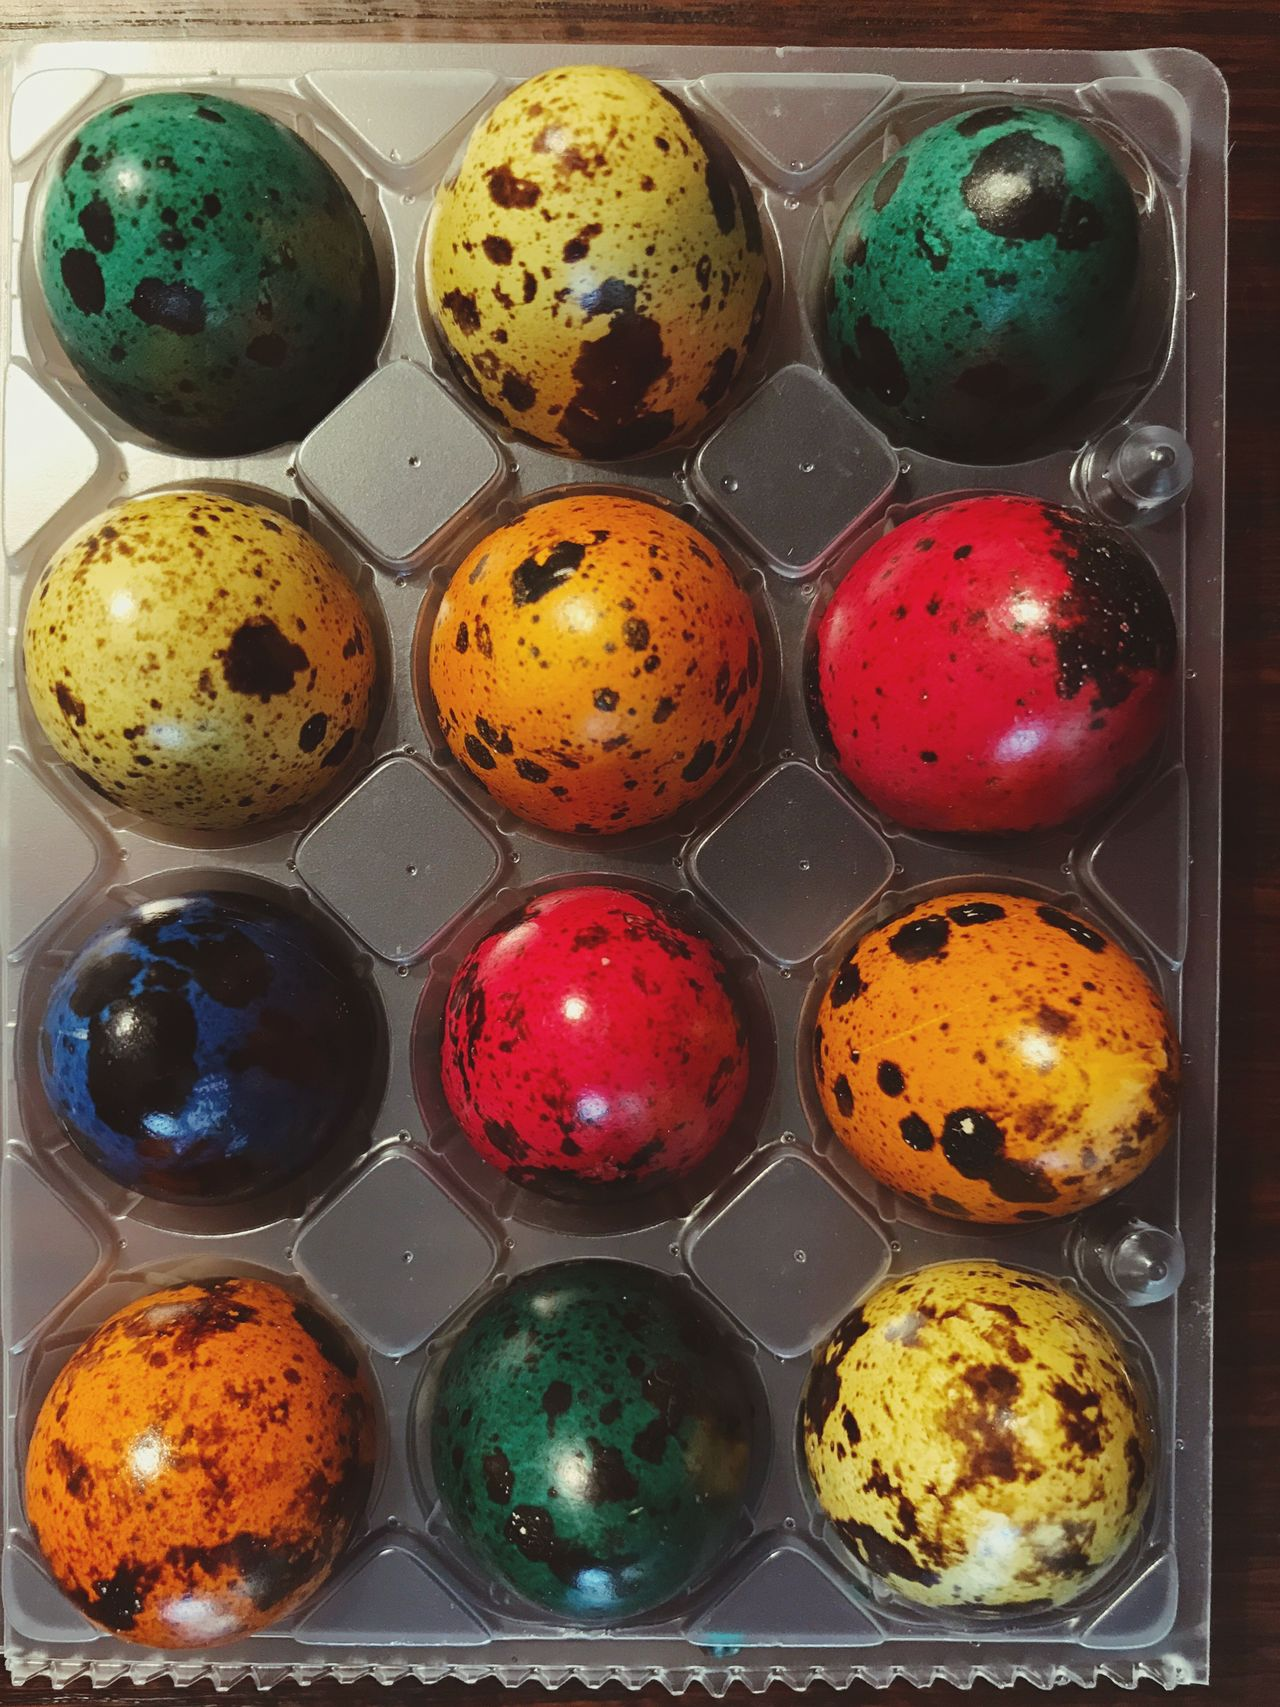 Quail Eggs Quail Egg Easter Eggs Colored Eggs Easter Variation Multi Colored In A Row Choice No People Close-up Food